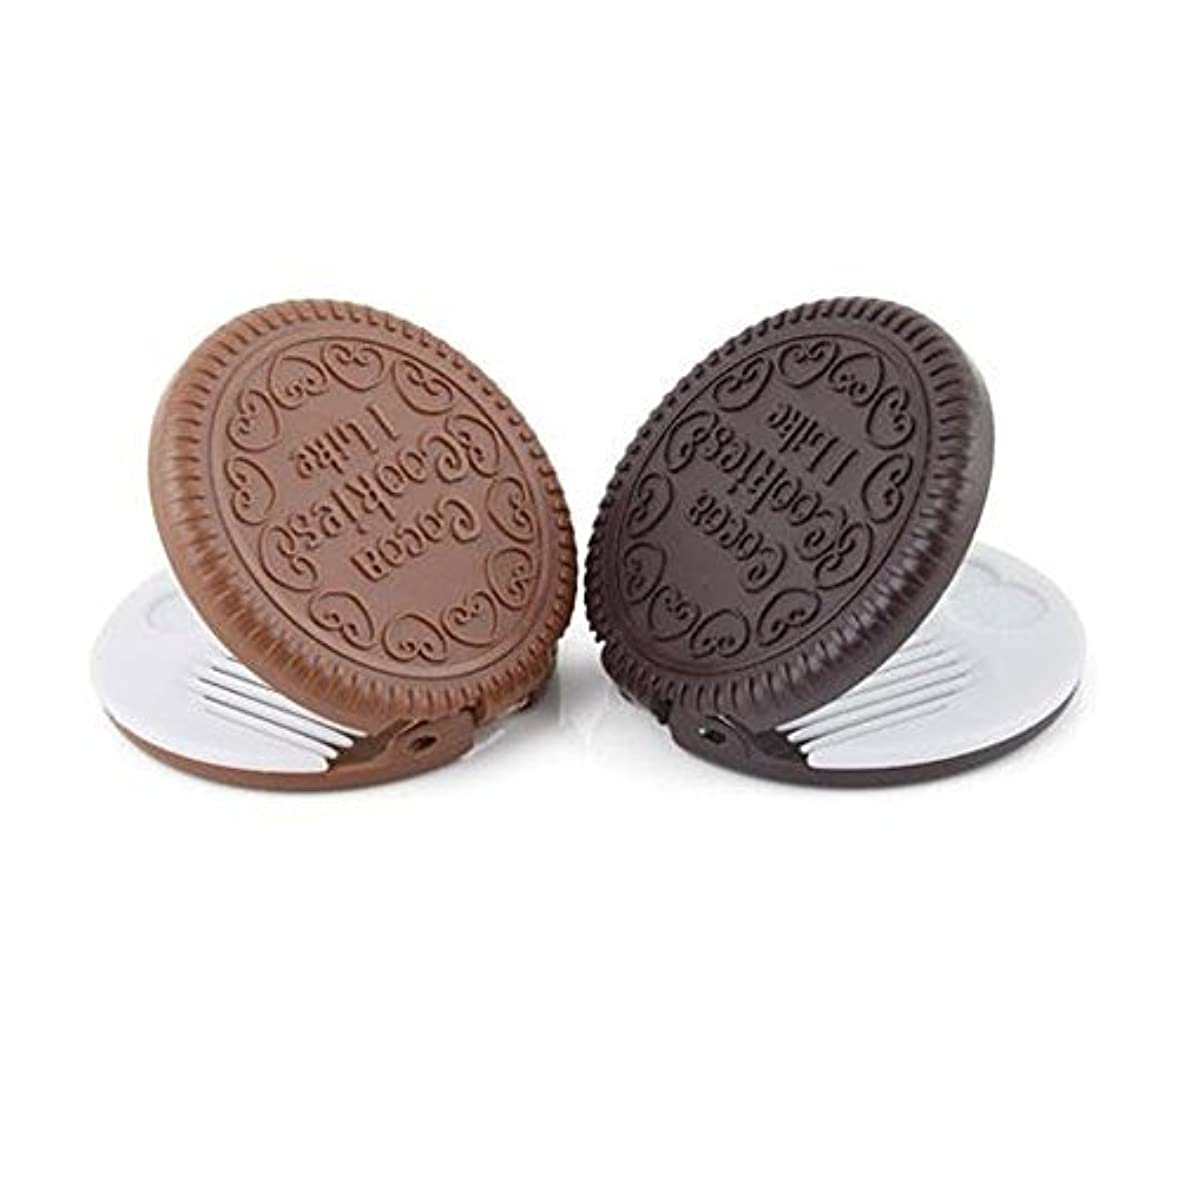 絶対のハウジングチューリップyueton Pack of 2 Mini Pocket Chocolate Cookie Compact Mirror with Comb [並行輸入品]